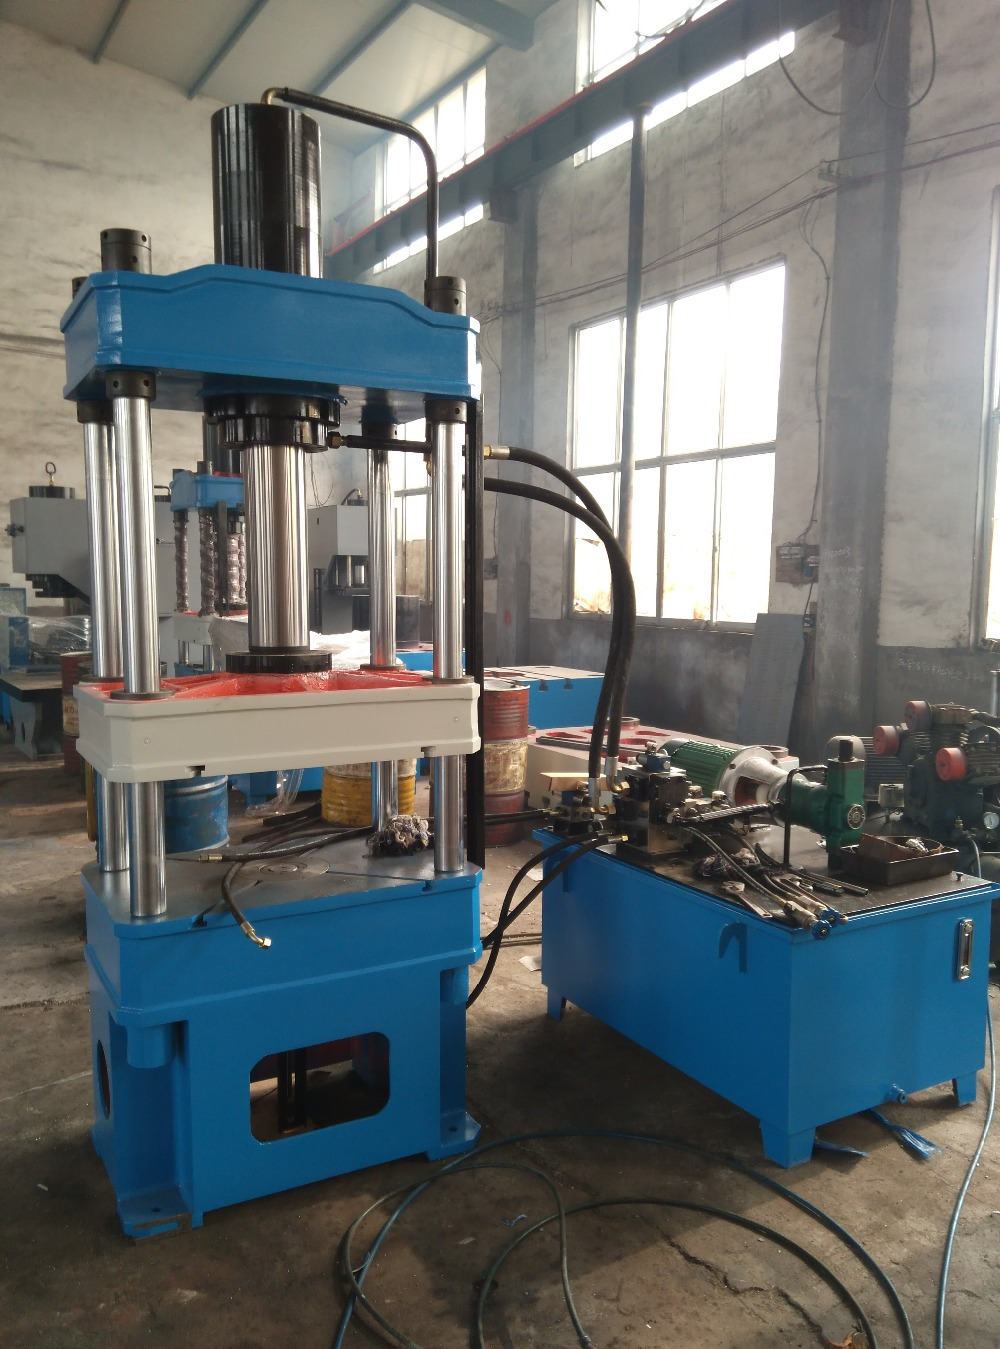 YTD32 100TA electric hydraulic press machine shop machinery tools